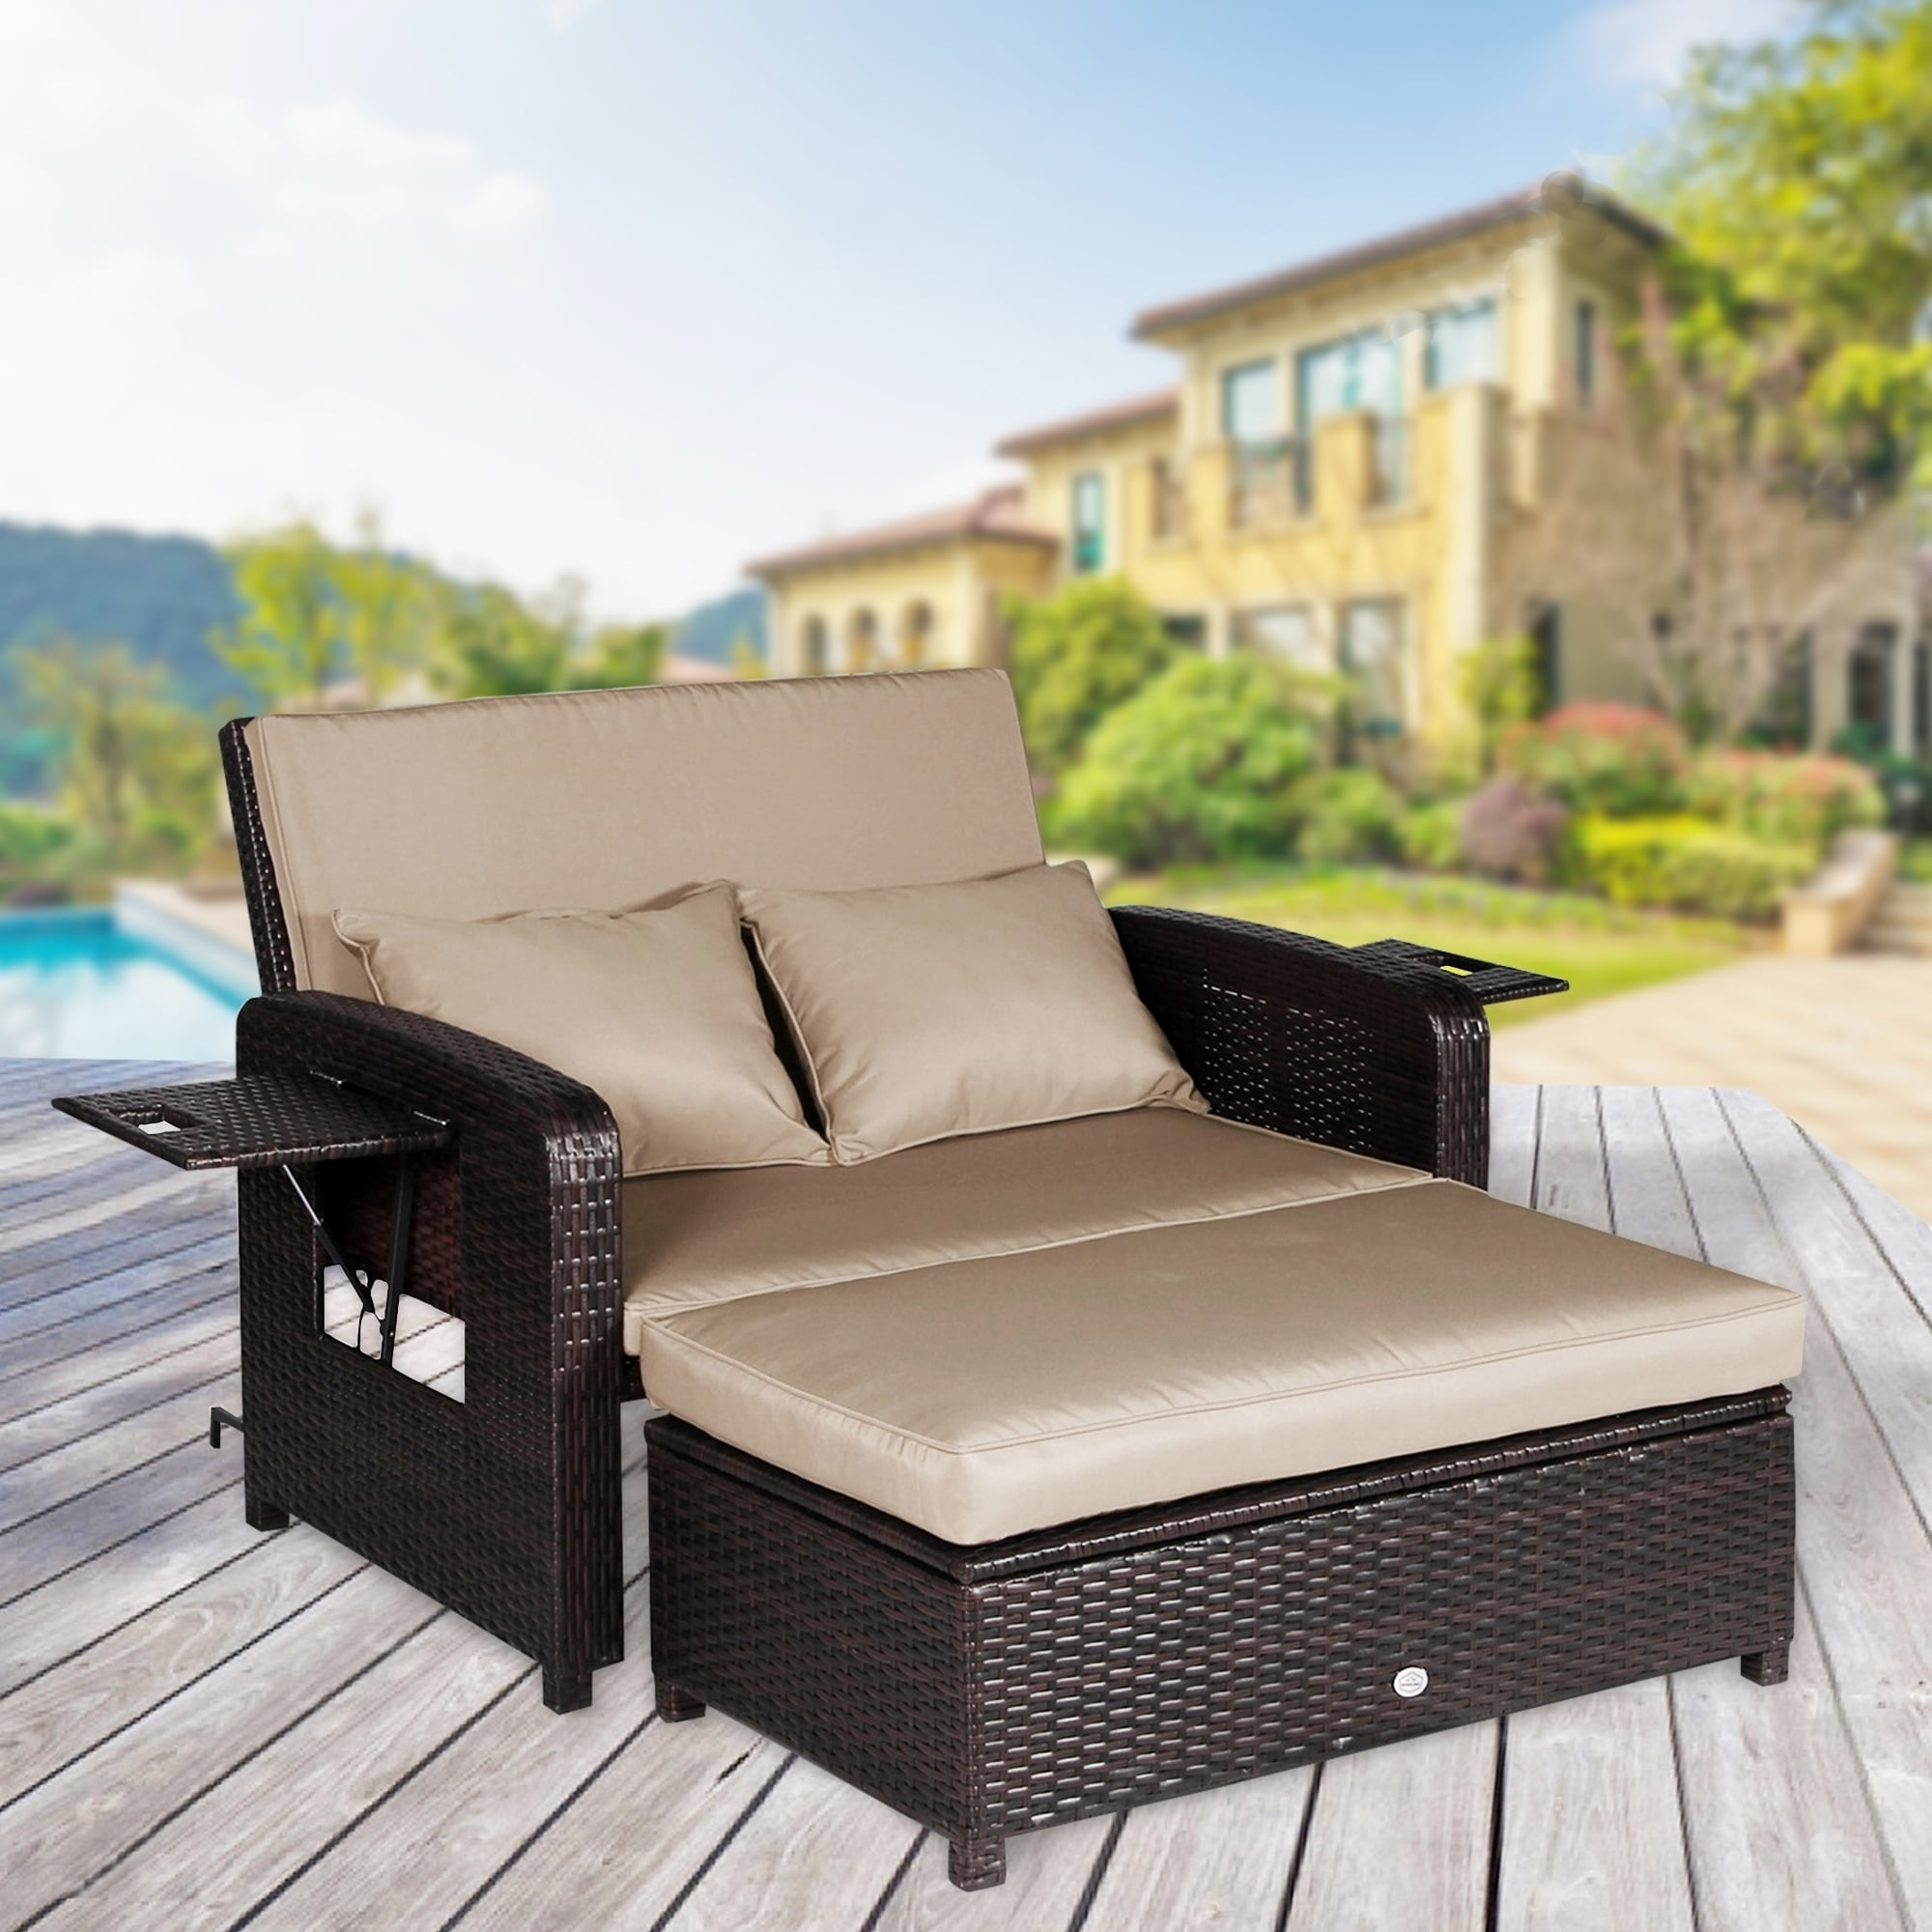 Picture of: Outdoor Loveseat Recliner 2 Piece Rattan Resin Storage Arm Ergonomic Comfortable Modern Easy Assembly Brown Set Overstock 22846151